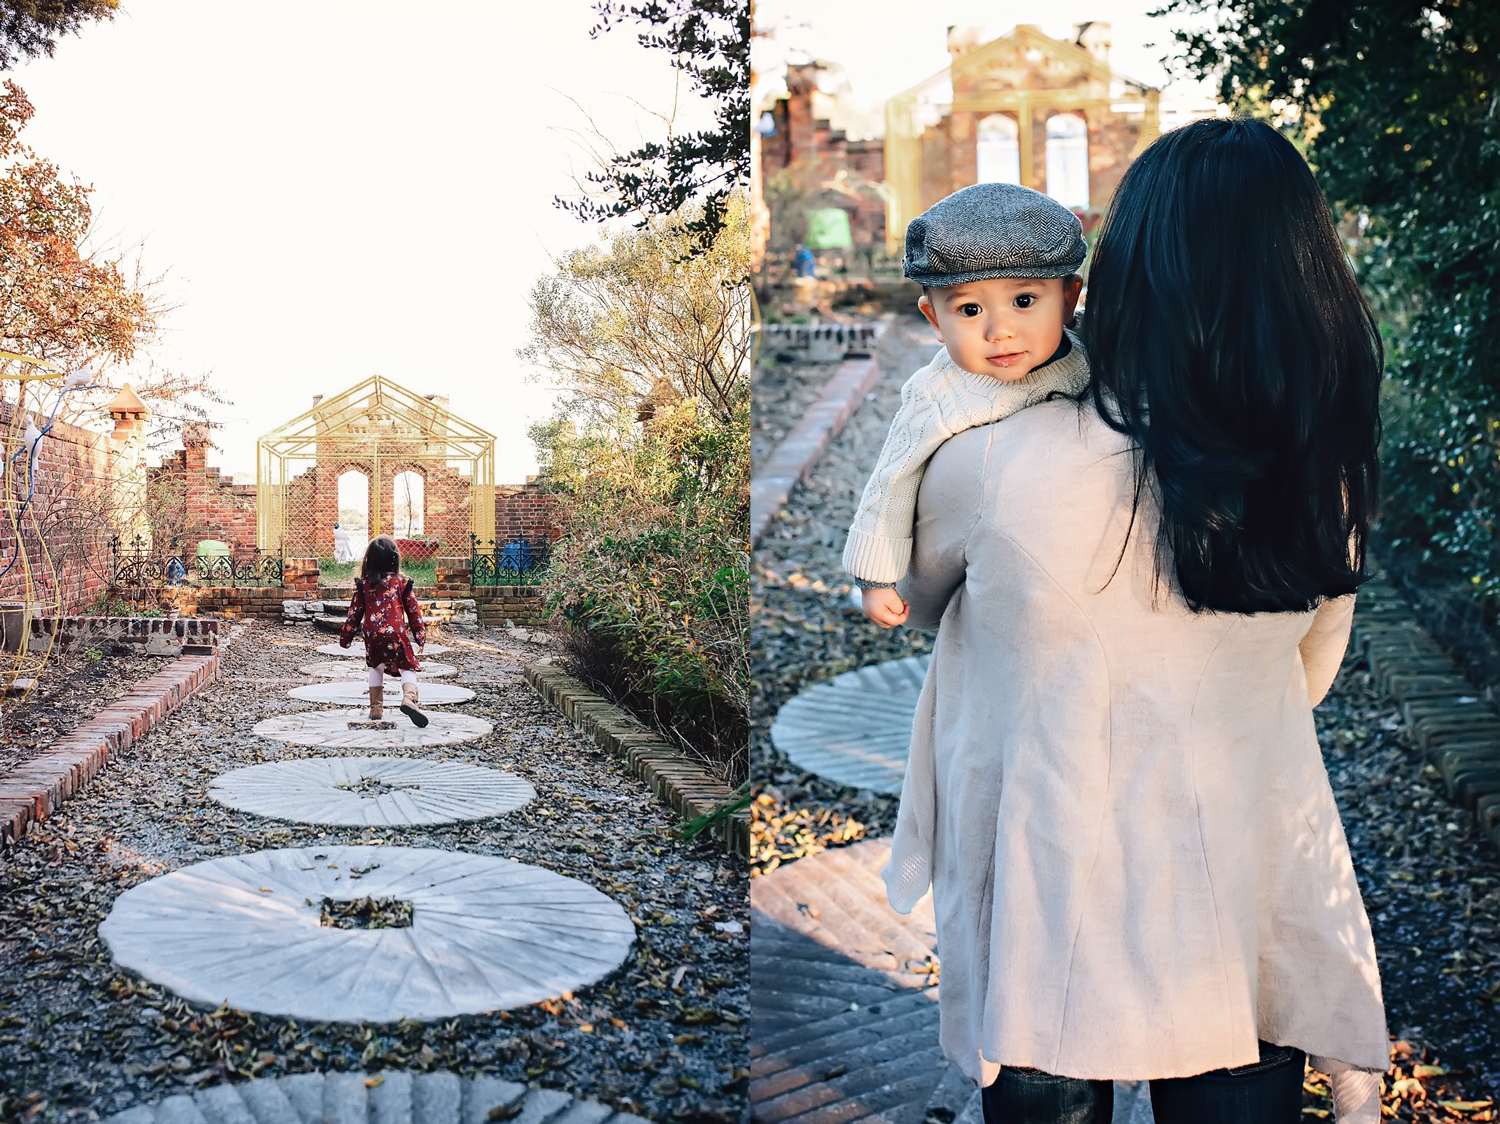 fun-family-photo-session-at-hermitage-museum-and-gardens-norfolk-va-melissa-bliss-photography.jpg